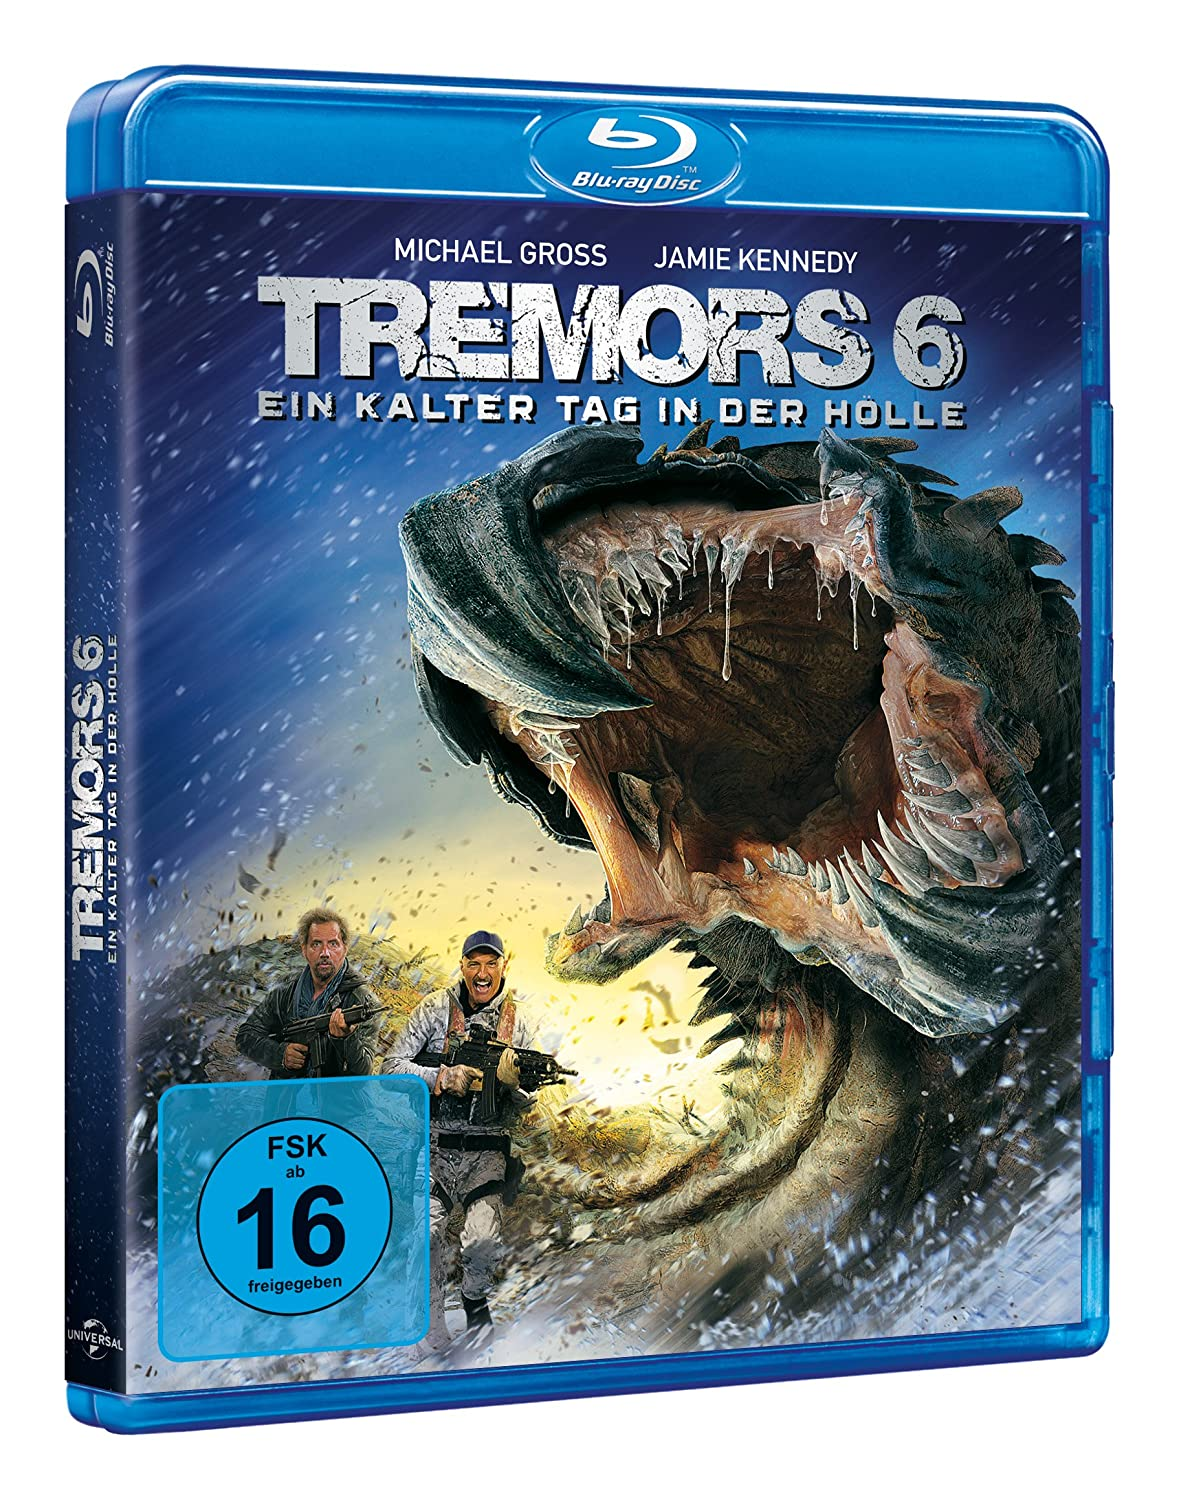 Tremors 6 - Ein kalter Tag in der Hölle Blu-ray: Amazon.de: Michael ...